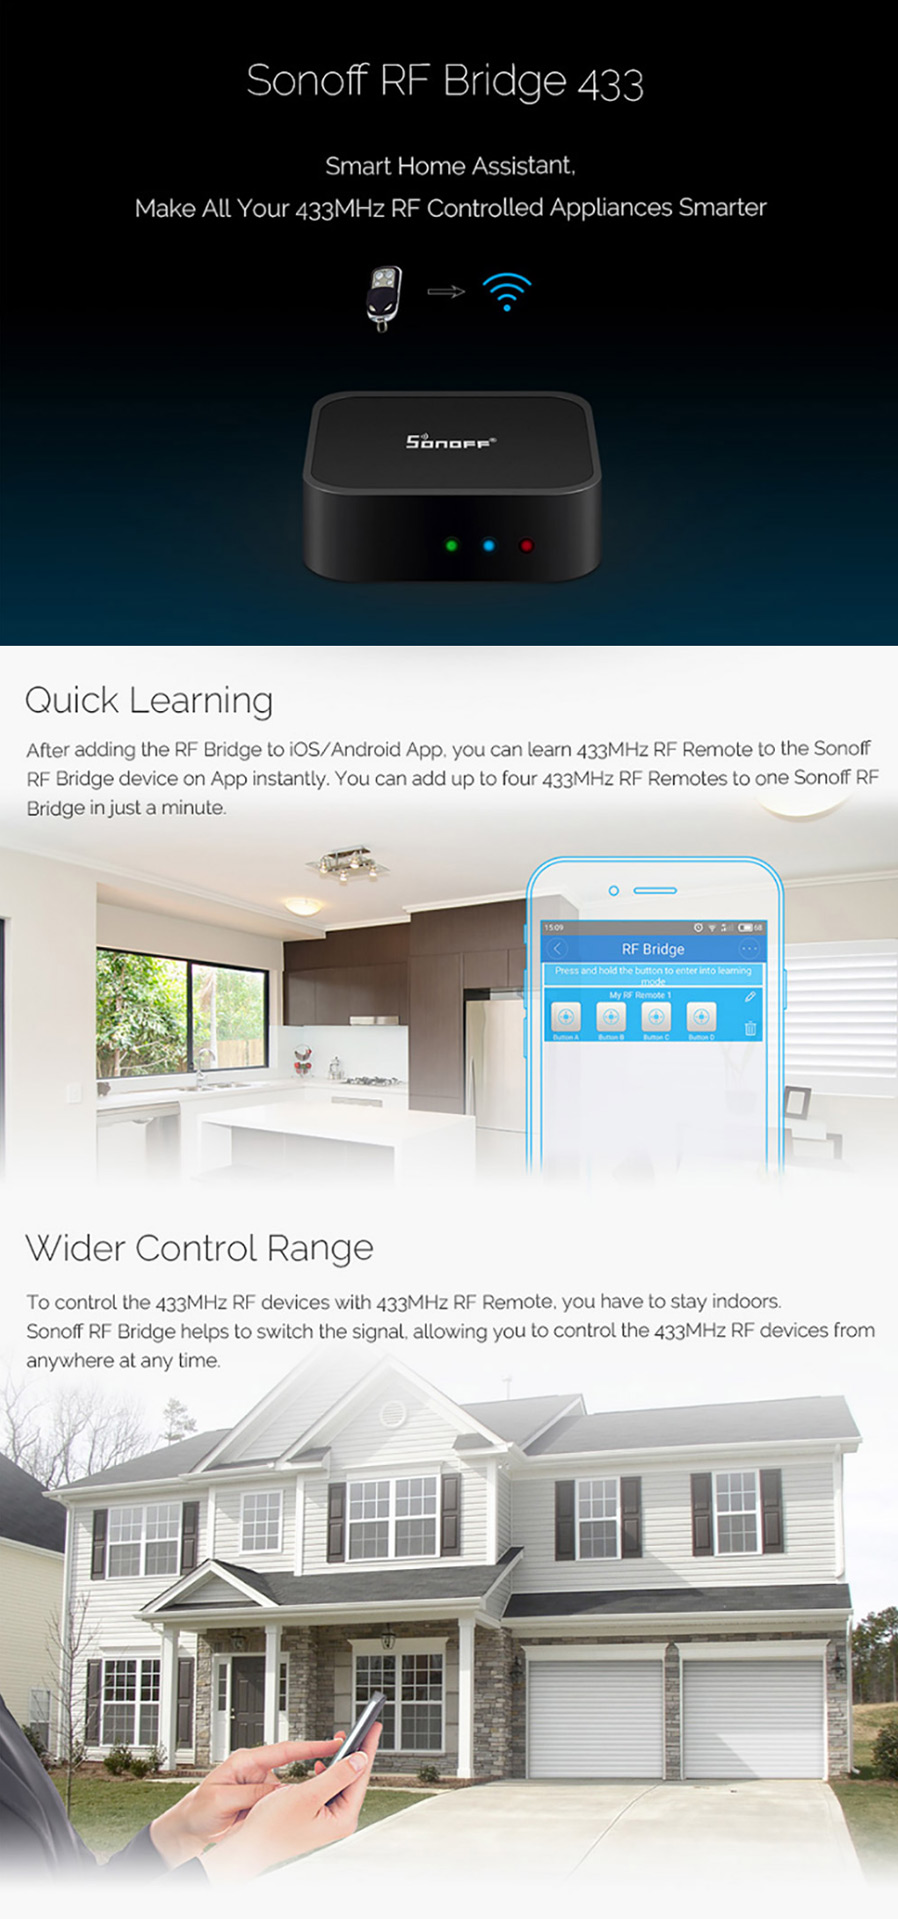 Sonoff RF Bridge Wi-Fi 433MHz Replacement for Smart Home Automation - Black